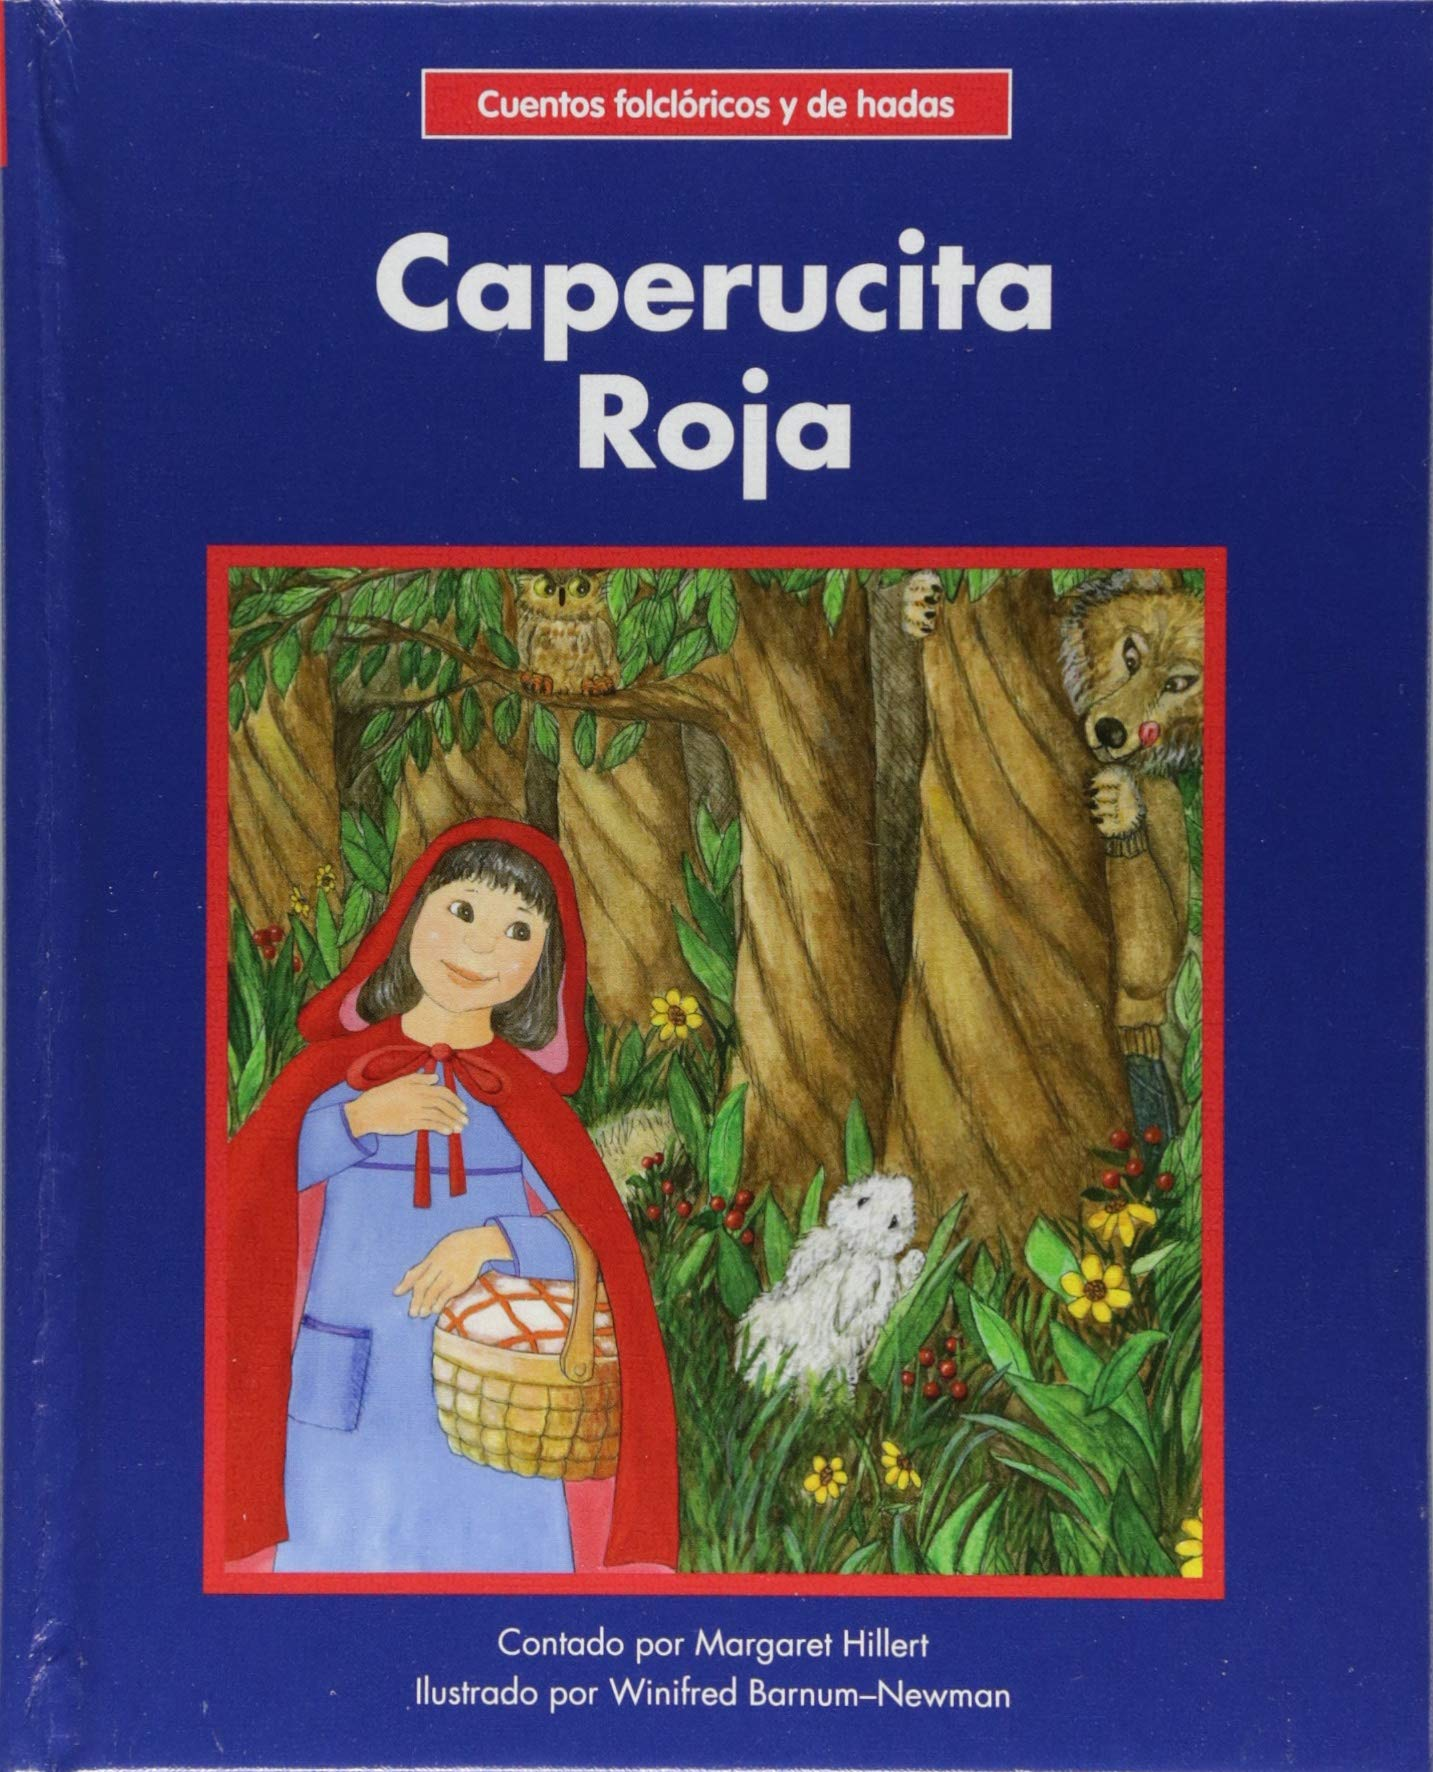 Caperucita Roja/ Little Red Riding Hood (Cuentos folcloricos y de hadas / Beginning-to-read, Spanish Fairy Tales & Folklore) (Spanish Edition) by Norwood House Pr